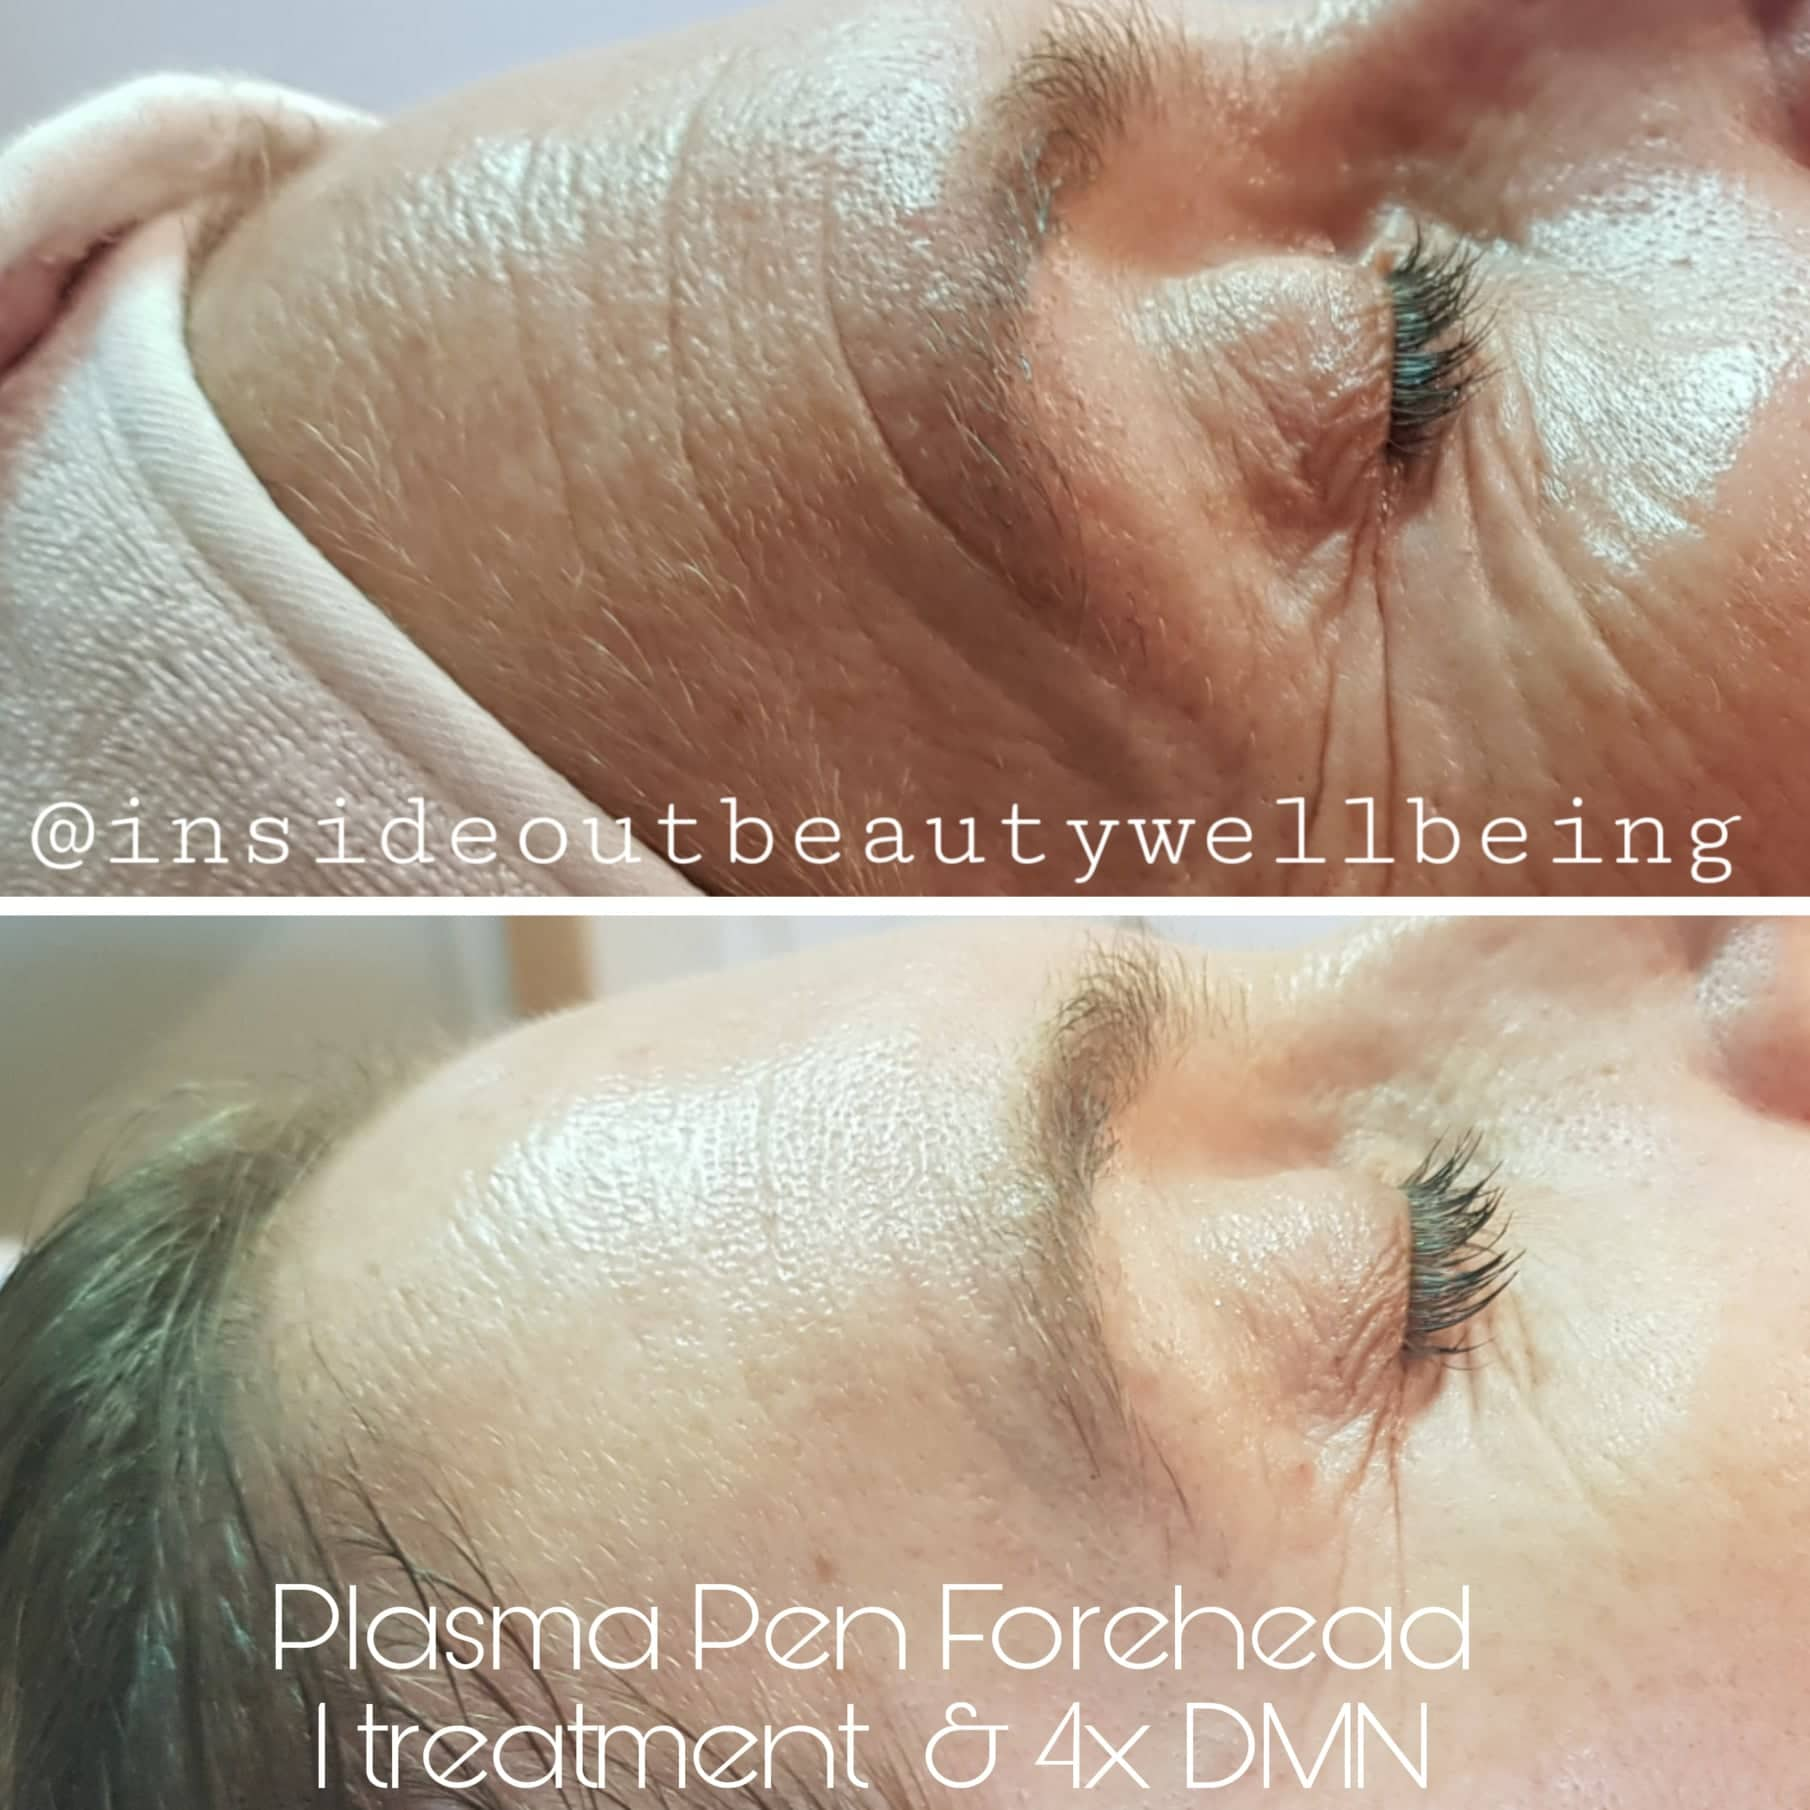 plasma pen forehead and DMN